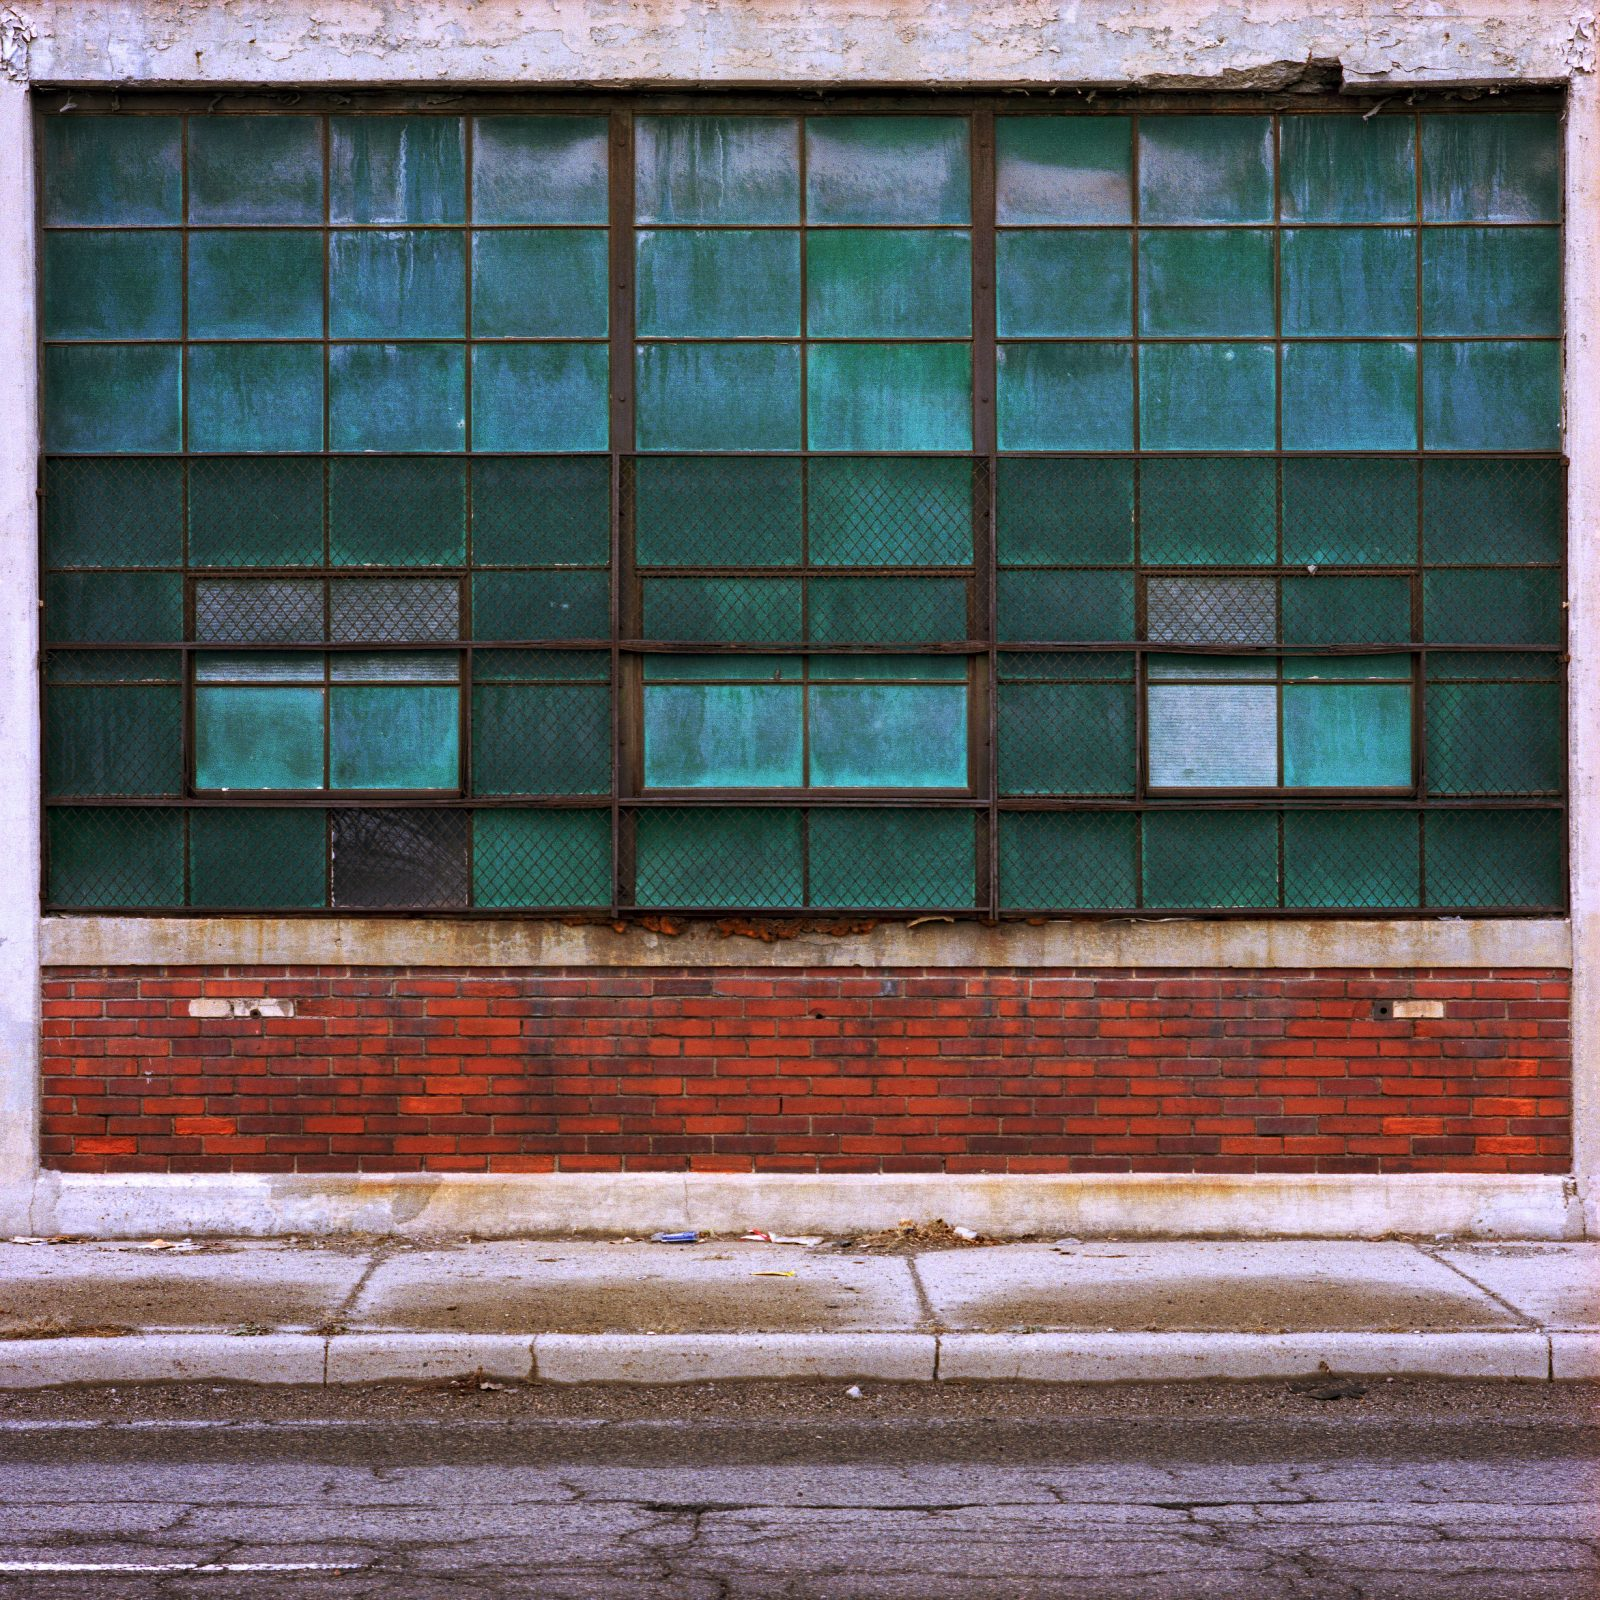 Green windows. Model T Plant. Detroit, Michigan.